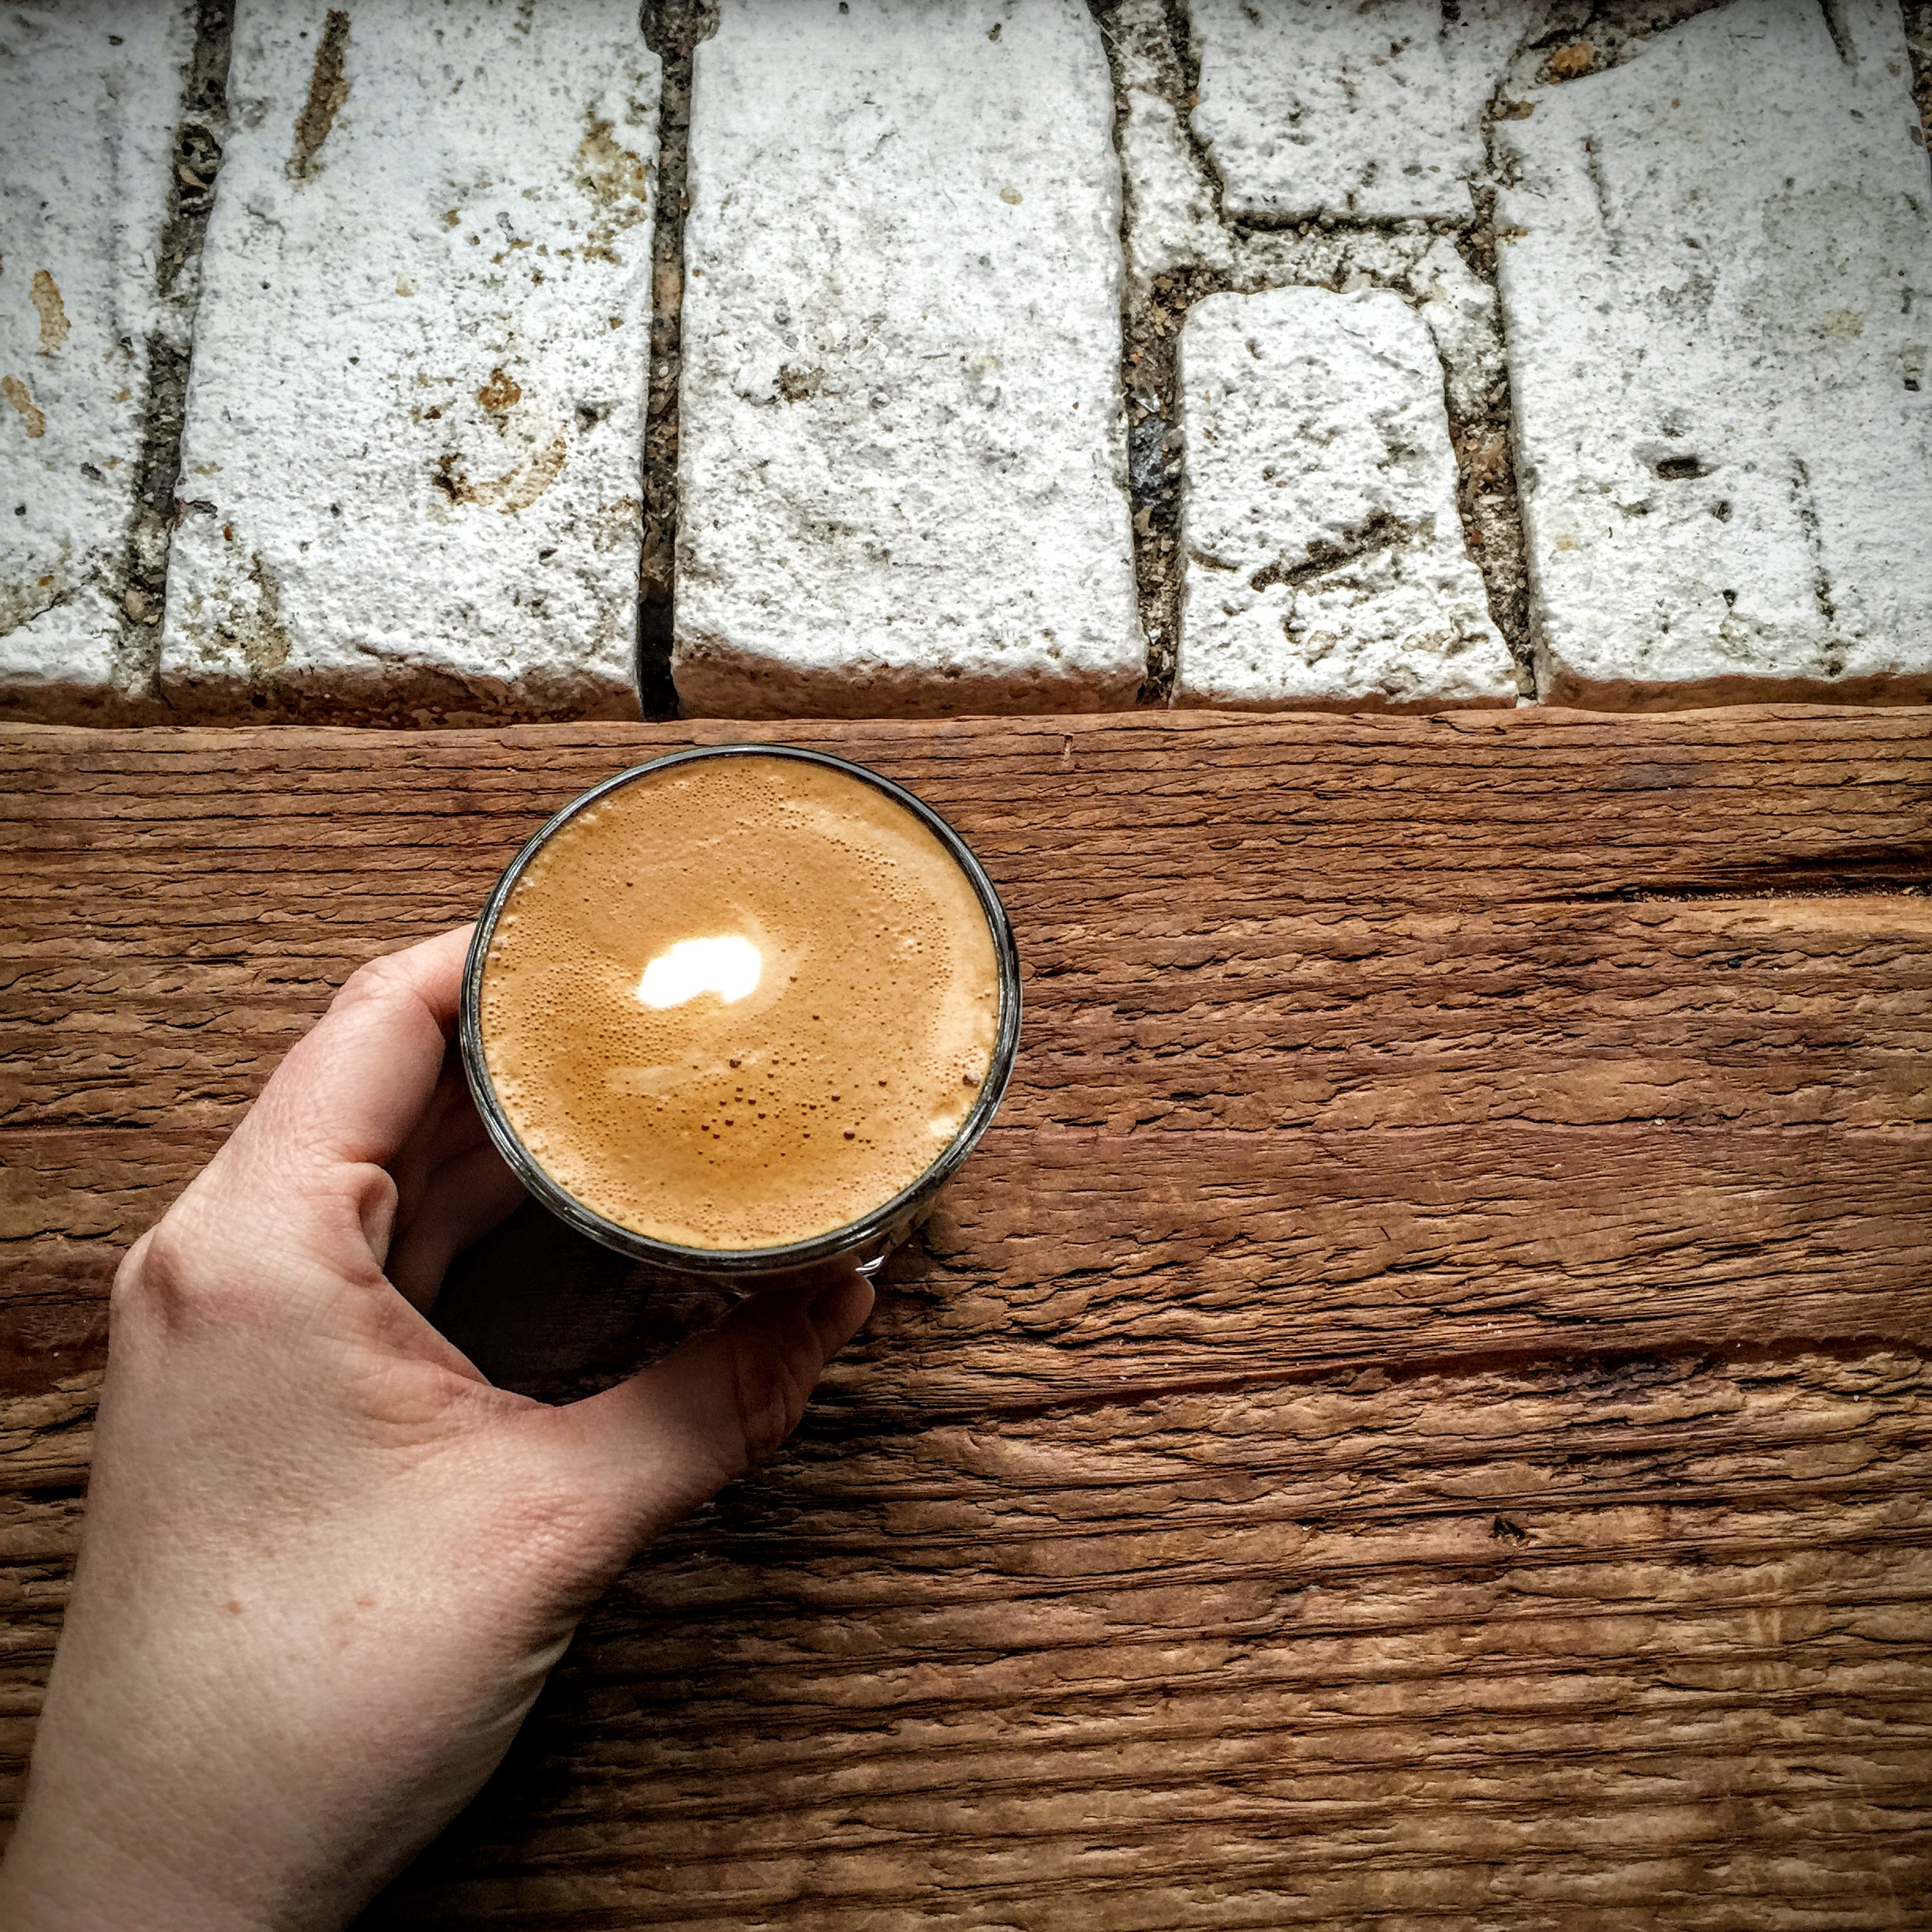 ROSE & IVY Journal The Best Coffee Shops in Brooklyn 2016 Brooklyn Roasting Plant